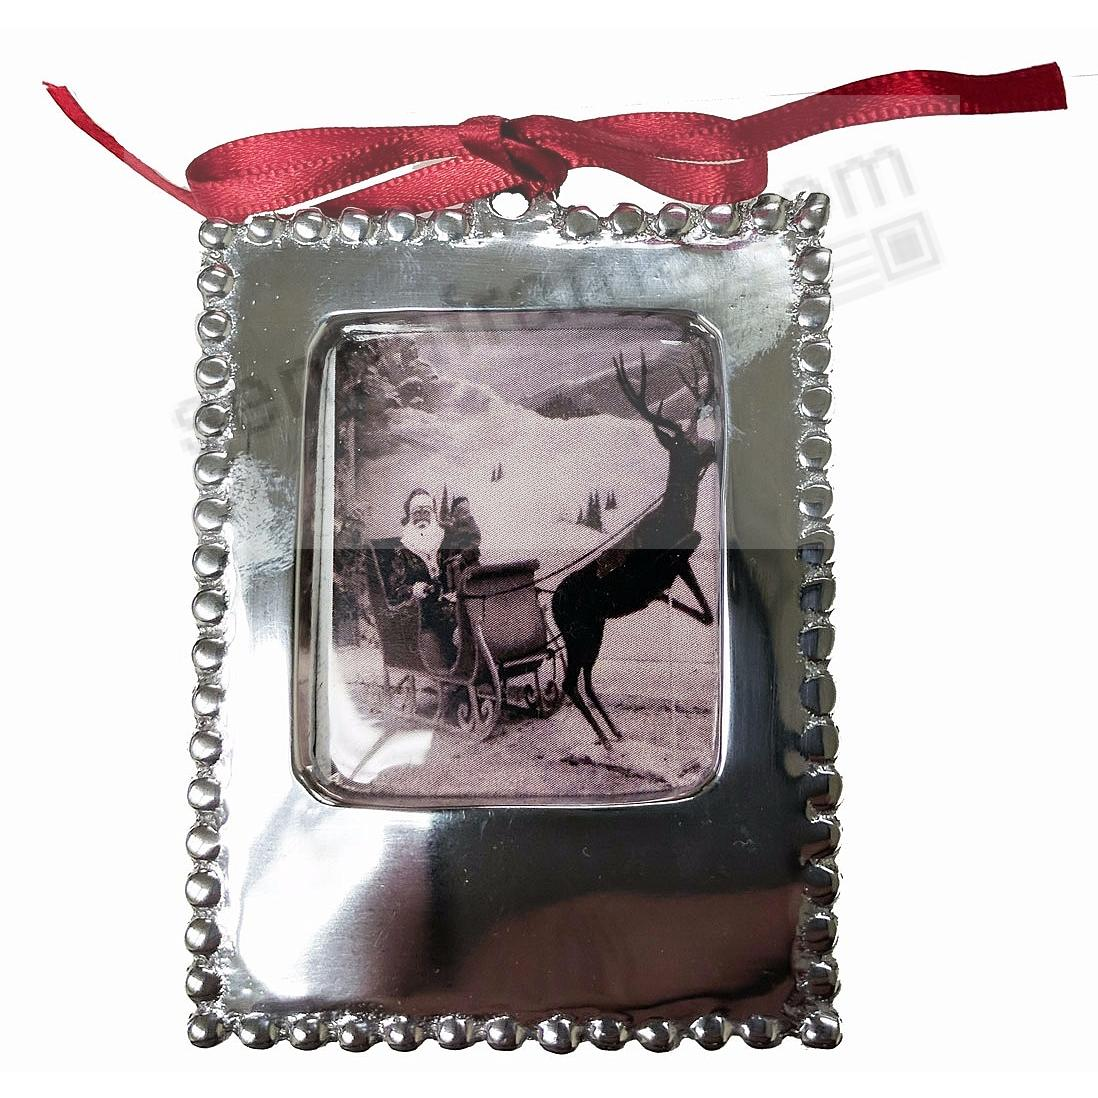 The Original Blank Statement Ornament 2x3 Frame By Mariposa